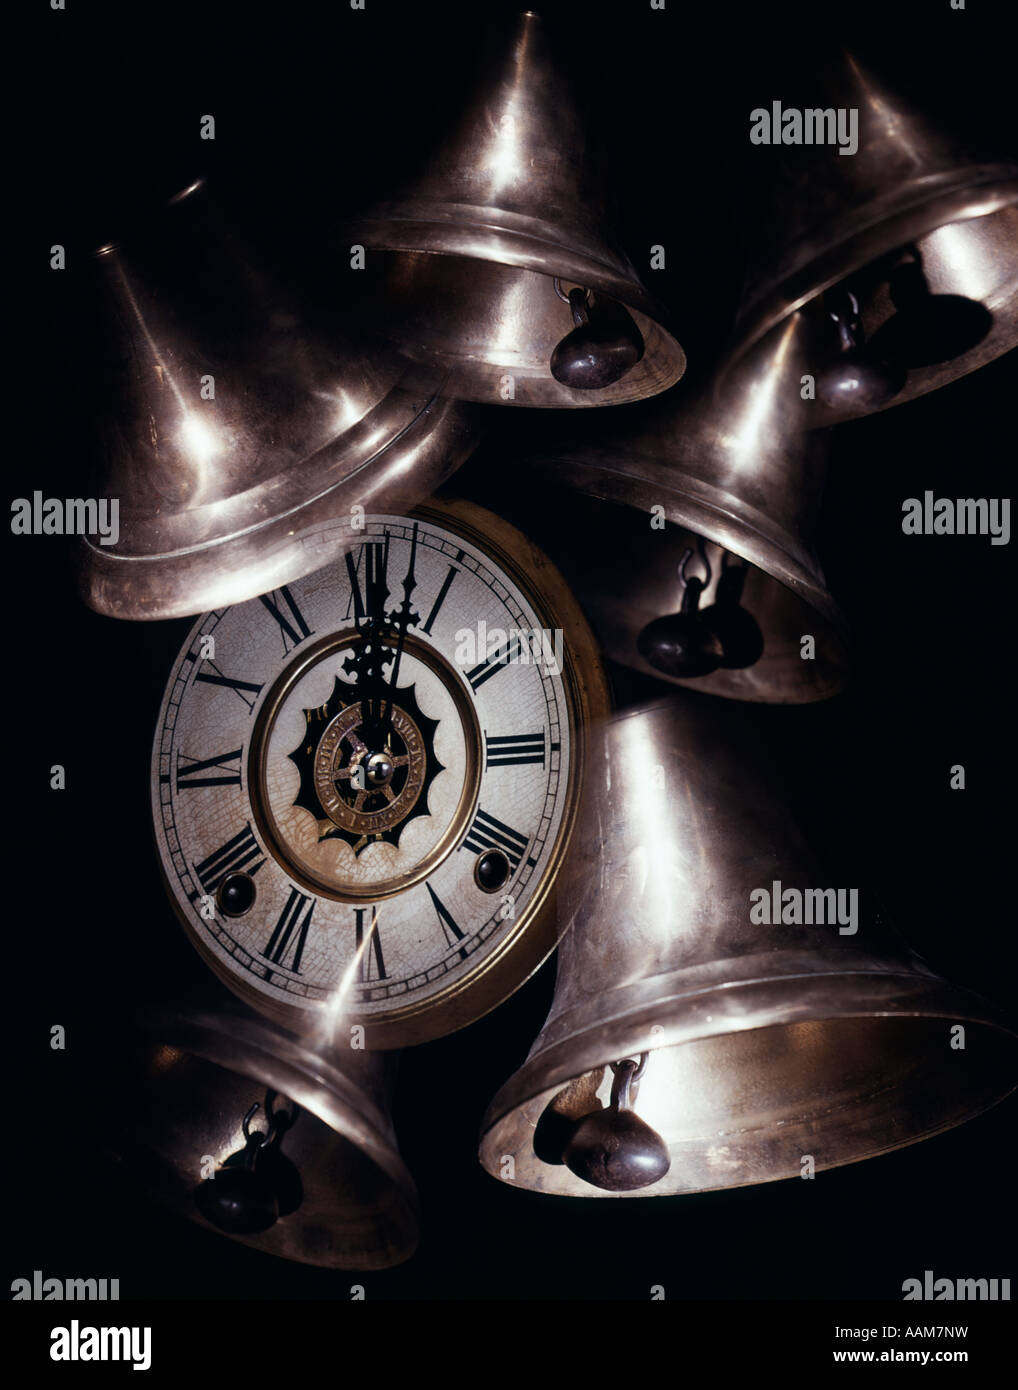 NEW YEAR BELLS AND CLOCK FACE MIDNIGHT CELEBRATION - Stock Image